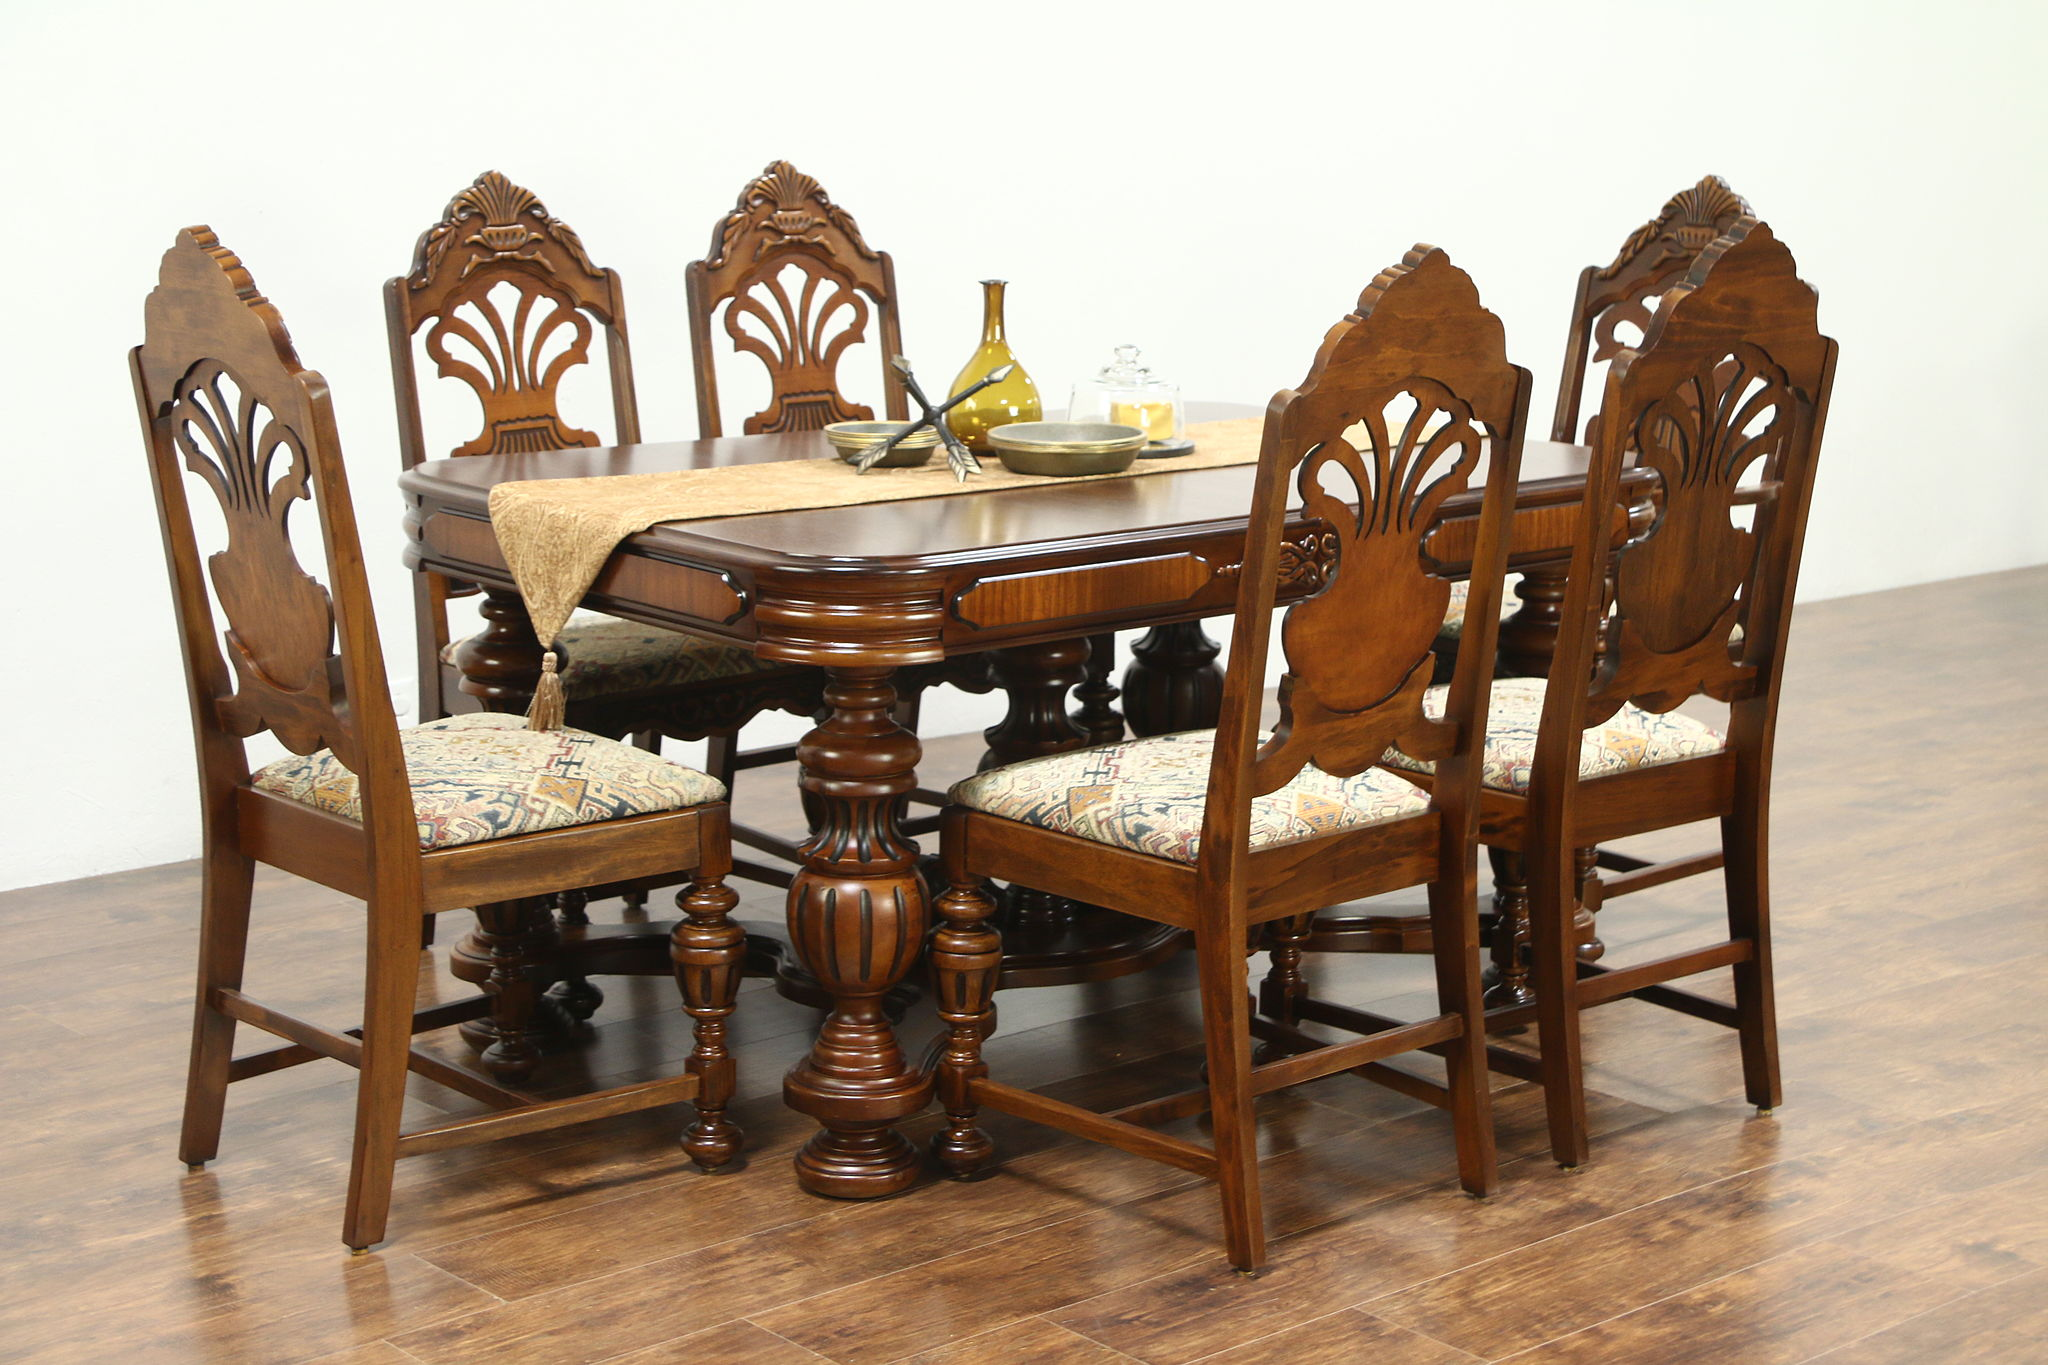 SOLD - English Tudor Style 1925 Antique Carved Dining Set, Table ...